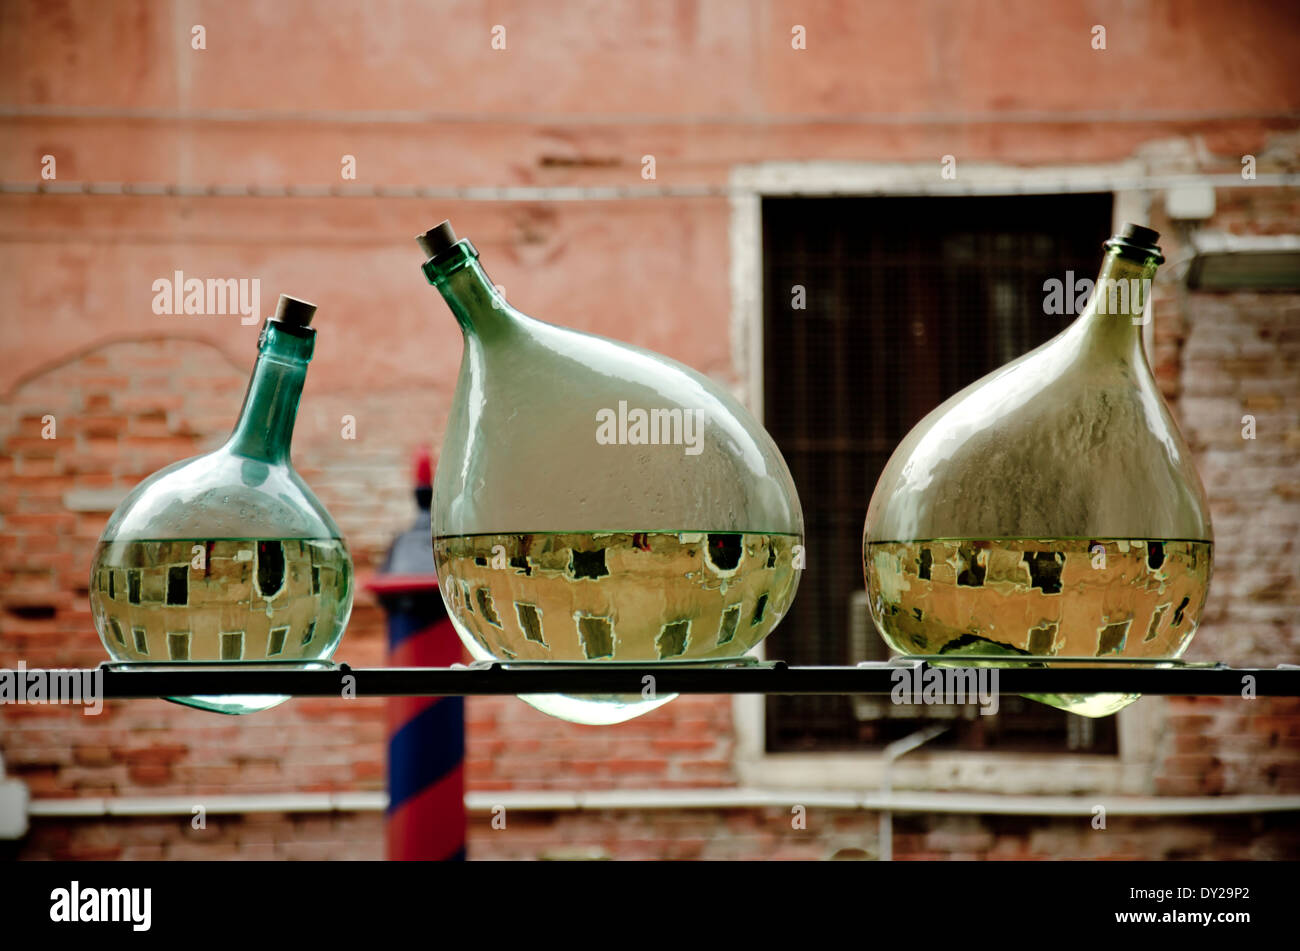 artwork in Venice during Biennale 2013 consisting of three half empty bottles - Stock Image